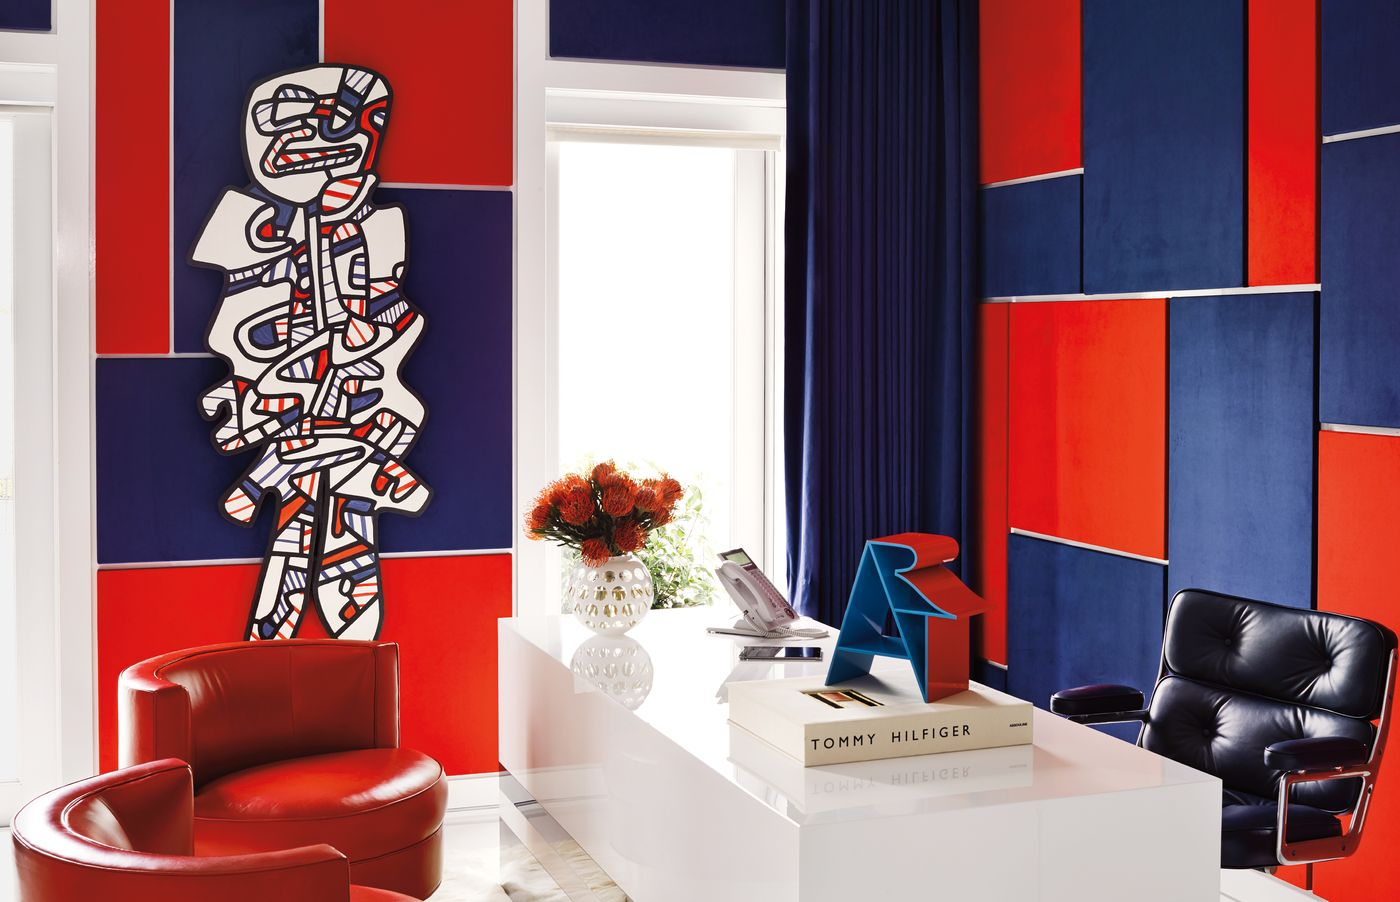 Five Works By Basquiat, Warhol, Dubuffet, Haring And - Tommy Hilfiger Wall Art - HD Wallpaper